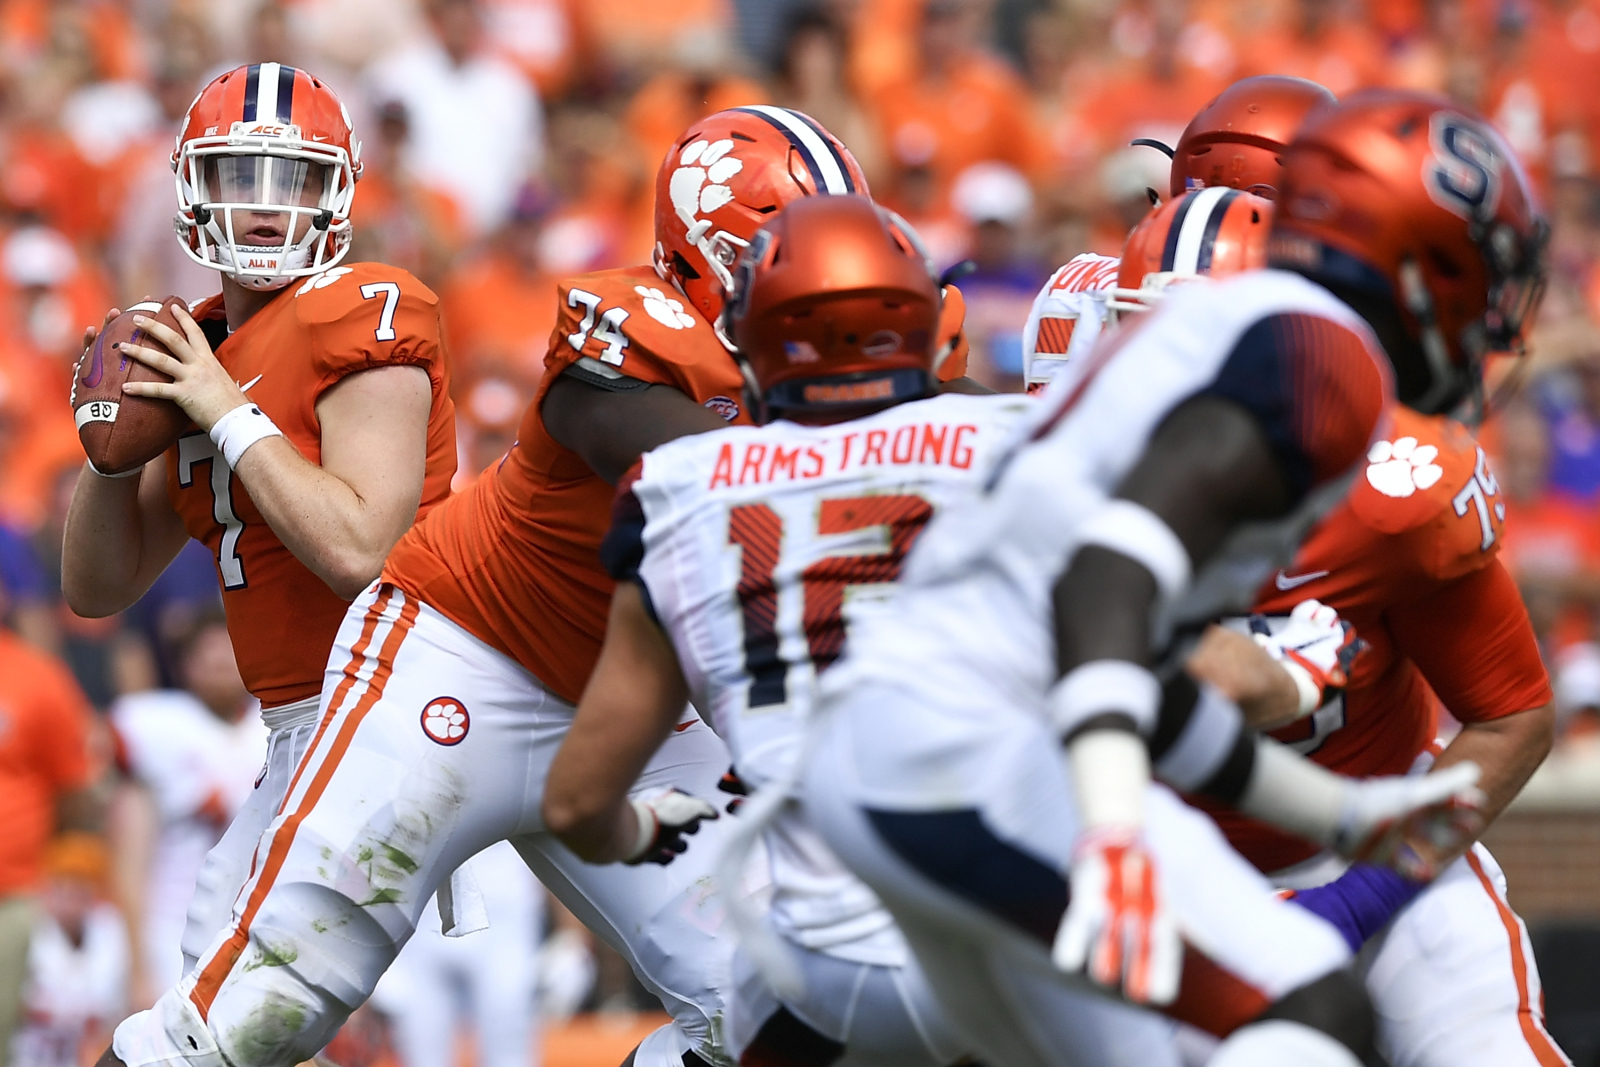 Clemson Football: Chase Brice grew up before our eyes vs. Syracuse